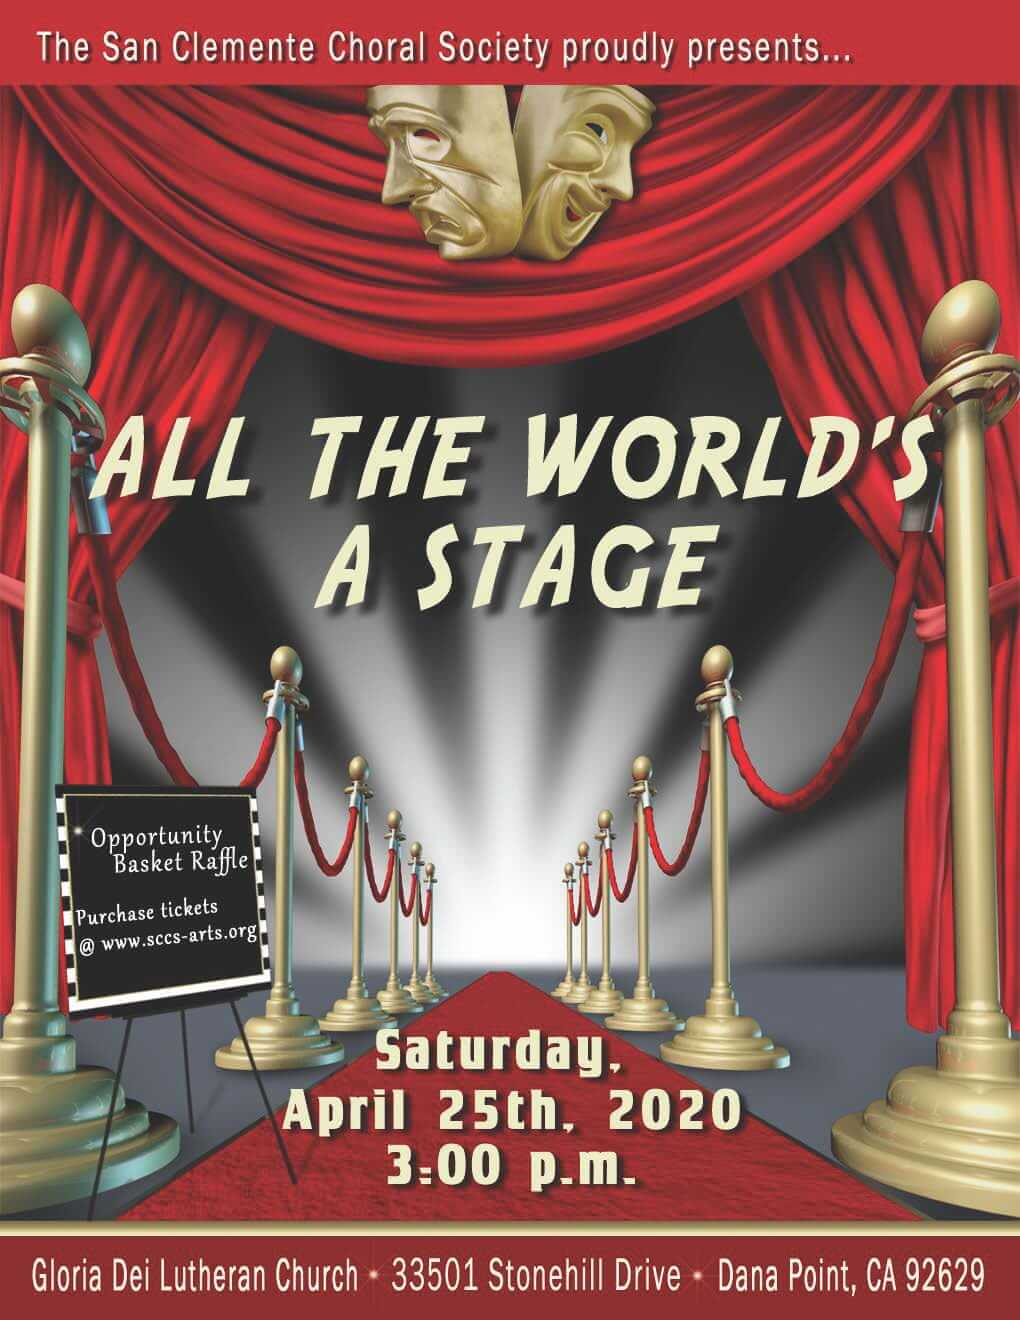 All the Worlds a Stage Concert April 25 2020